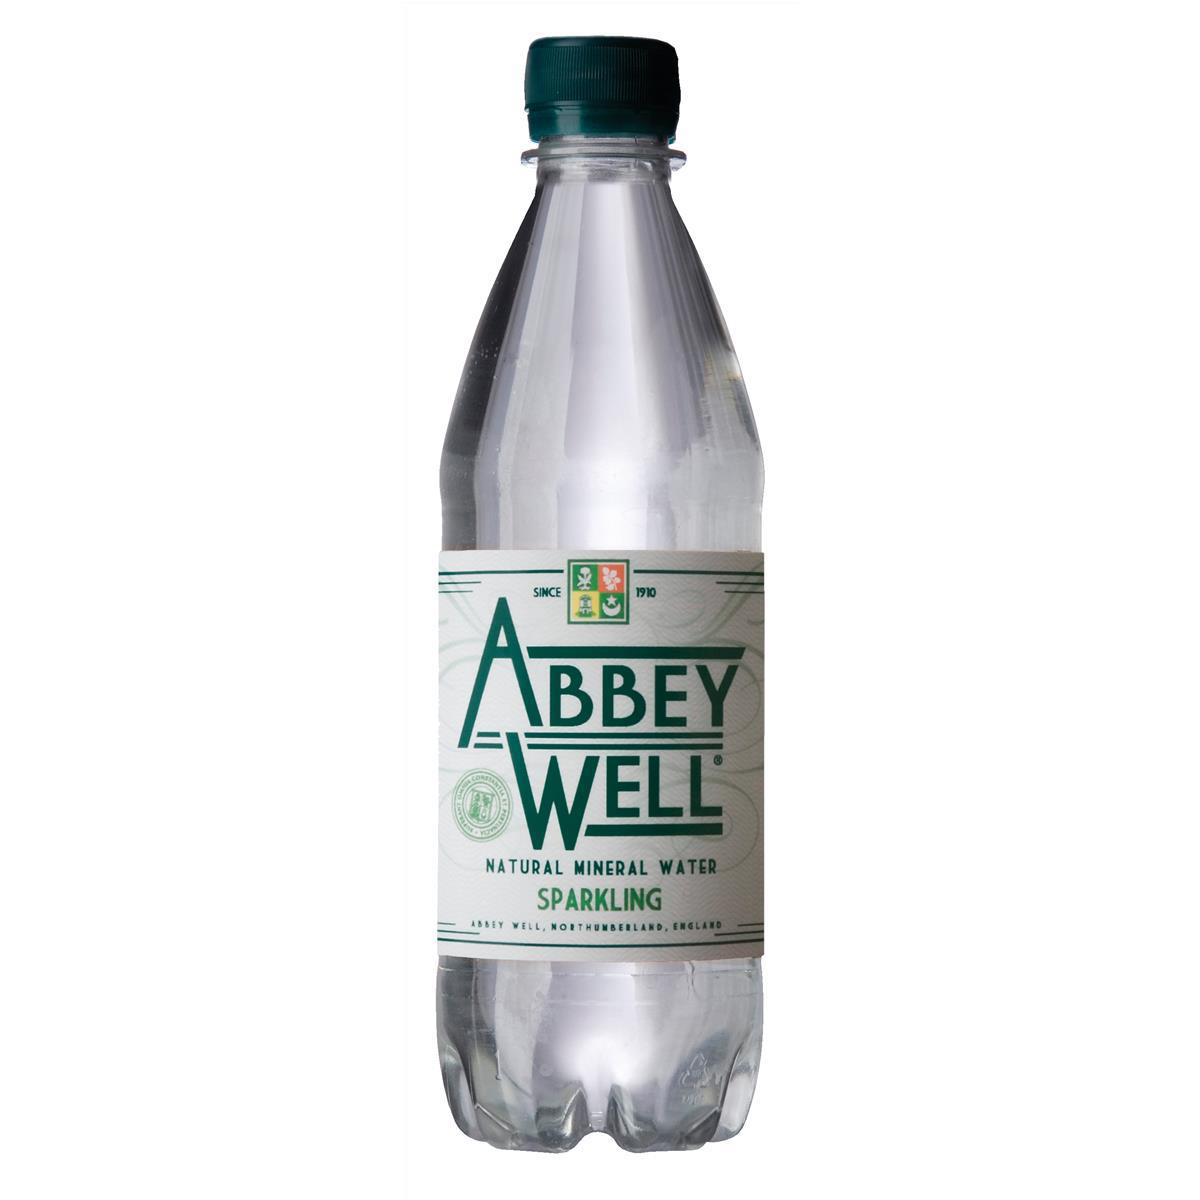 Abbey Well Natural Mineral Water Bottle Plastic Sparkling 500ml Ref 3791 [Pack 24]